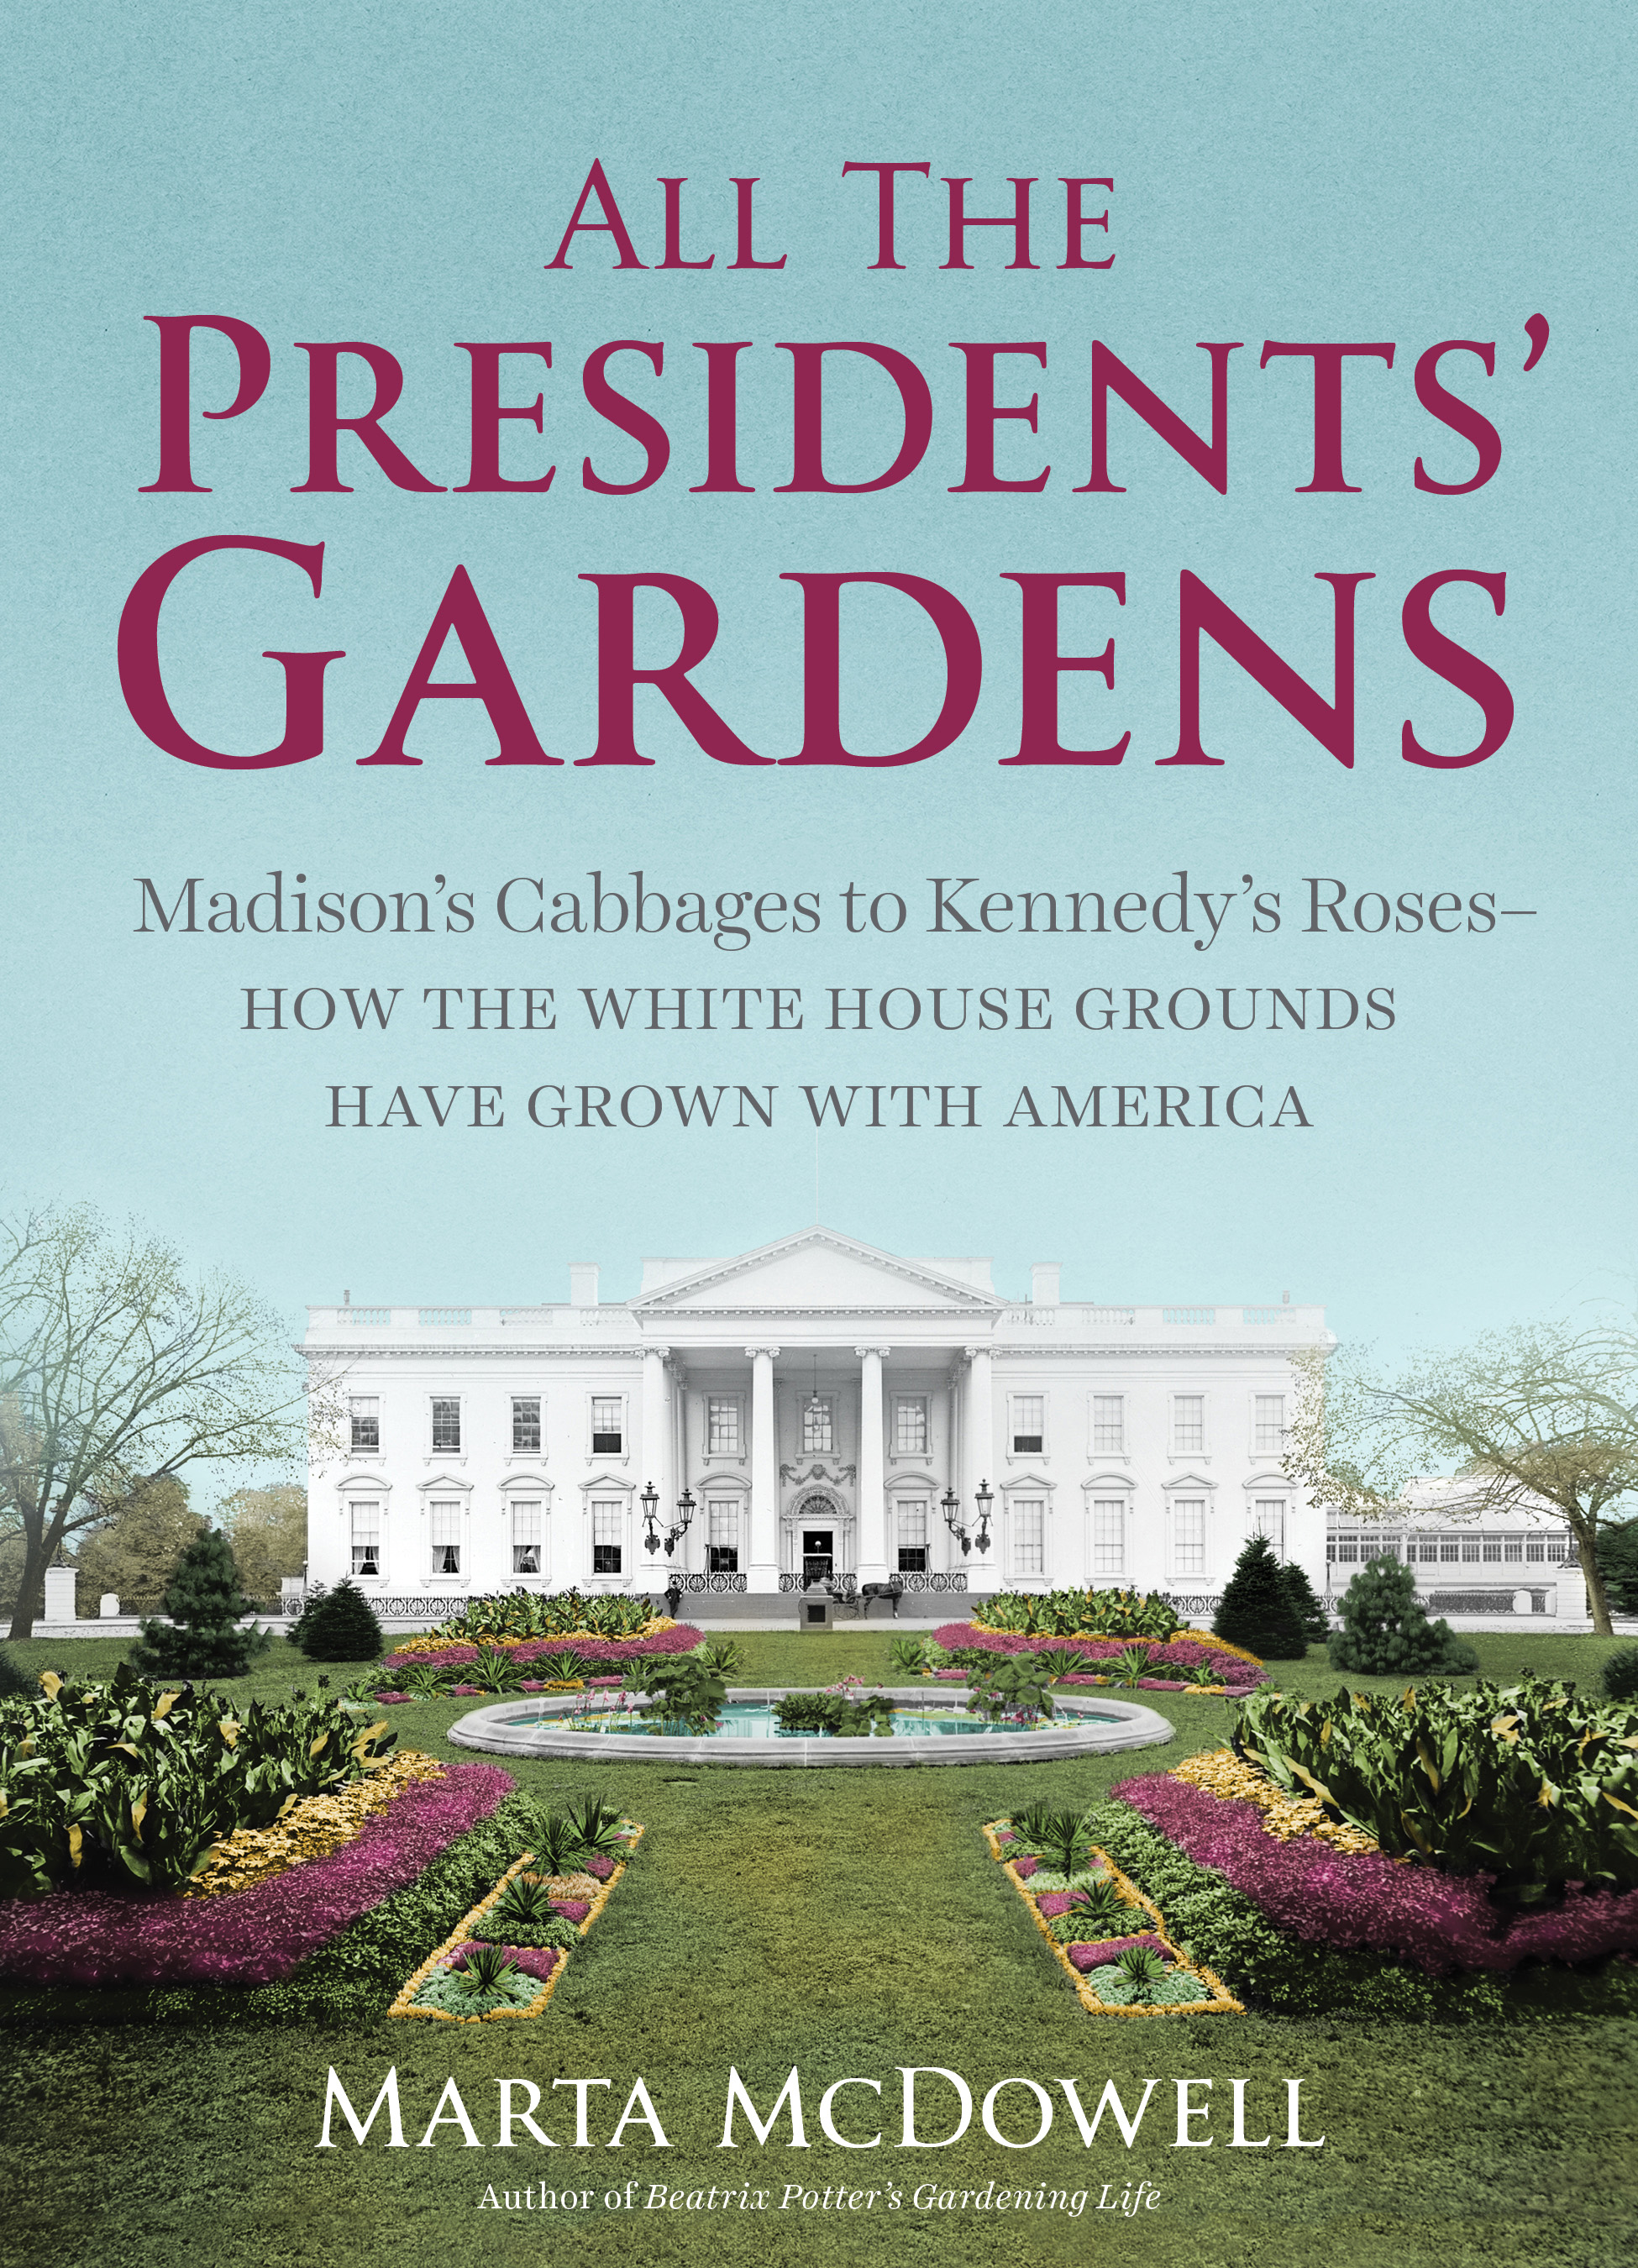 All the Presidents' Gardens Madison's Cabbages to Kennedy's Roses—How the White House Grounds Have Grown with America